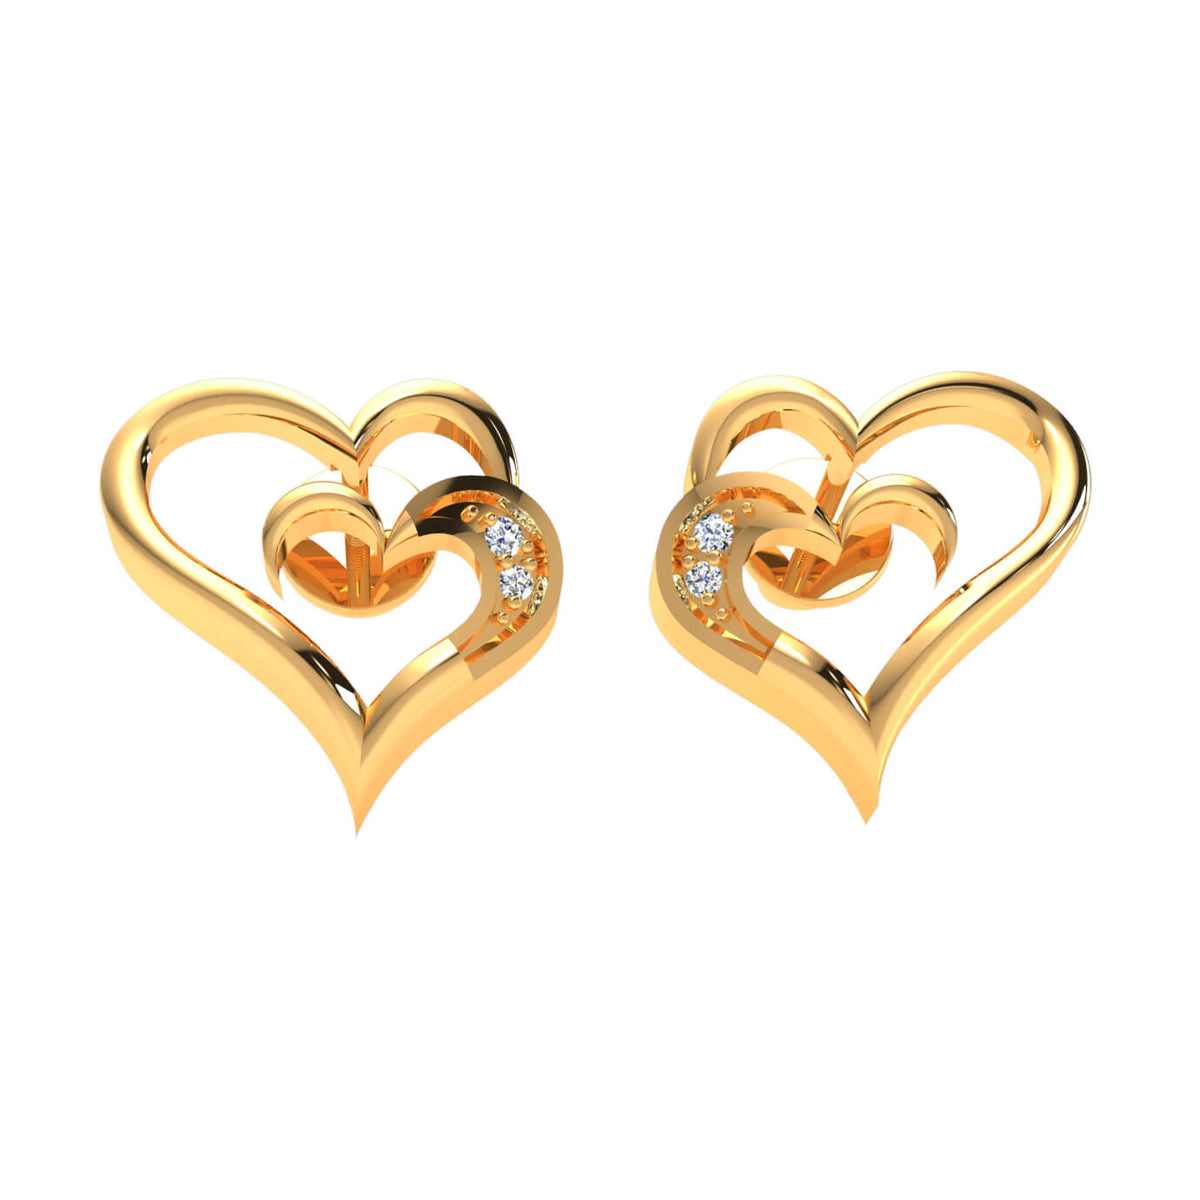 0.02 Ct Stud Round GH SI1 Diamond Heart Earrings 14k Gold